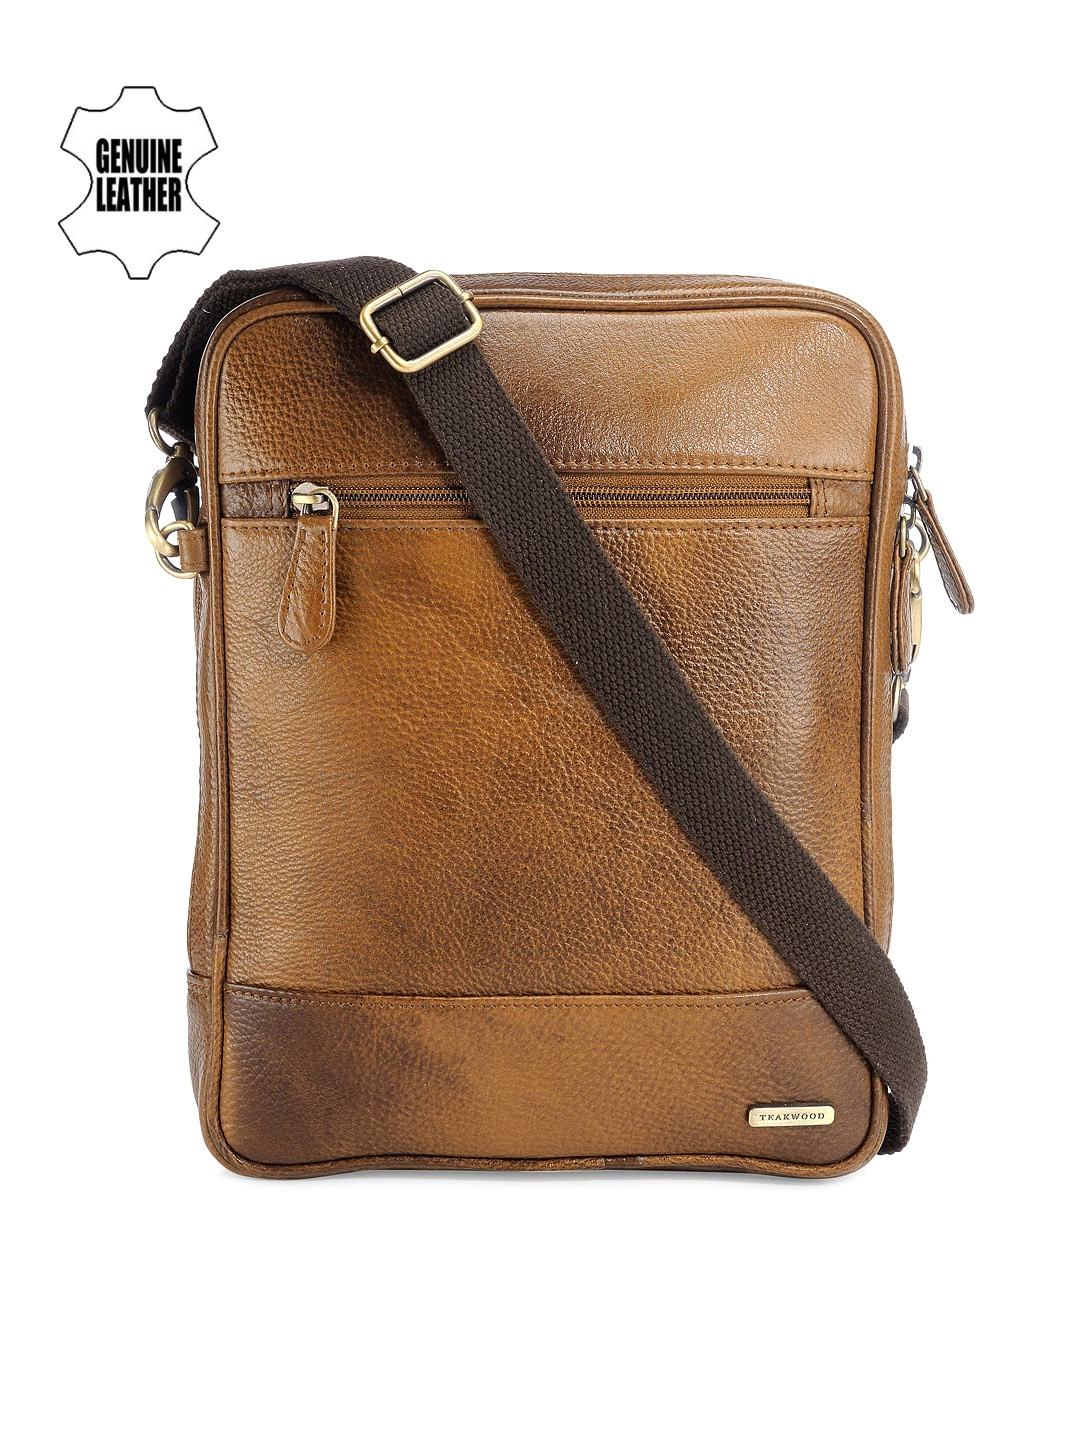 Messenger Bags - Buy Messenger Bags Online in India   Myntra d6bc0575c1